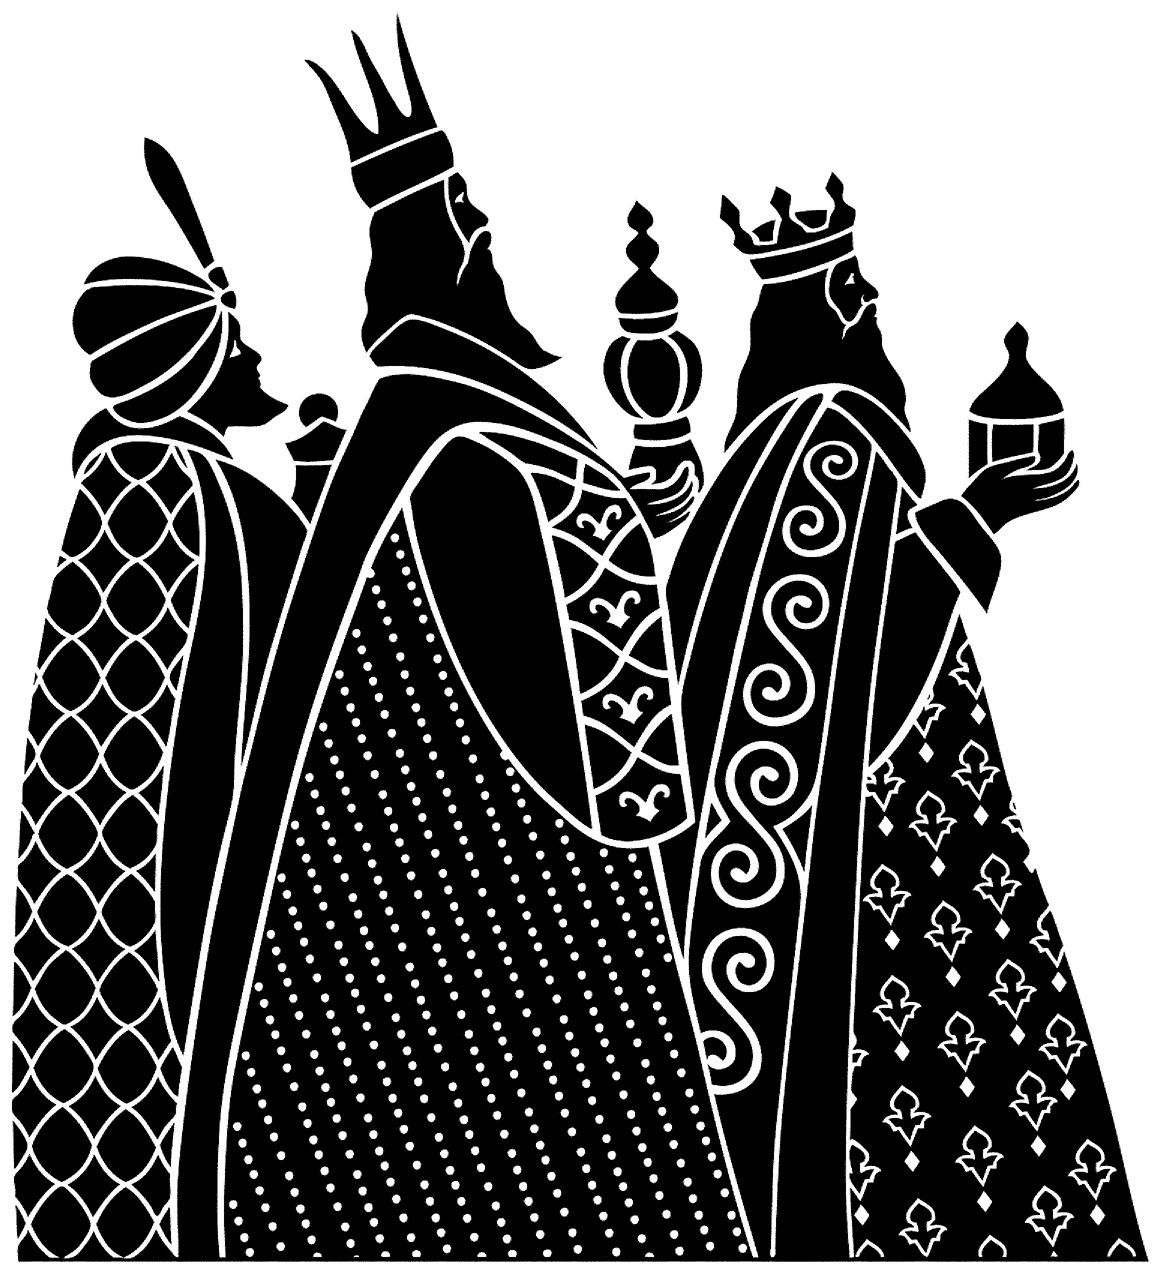 3 Wise Men Gifts For Christmas: Best 25+ Three Wise Men Ideas On Pinterest